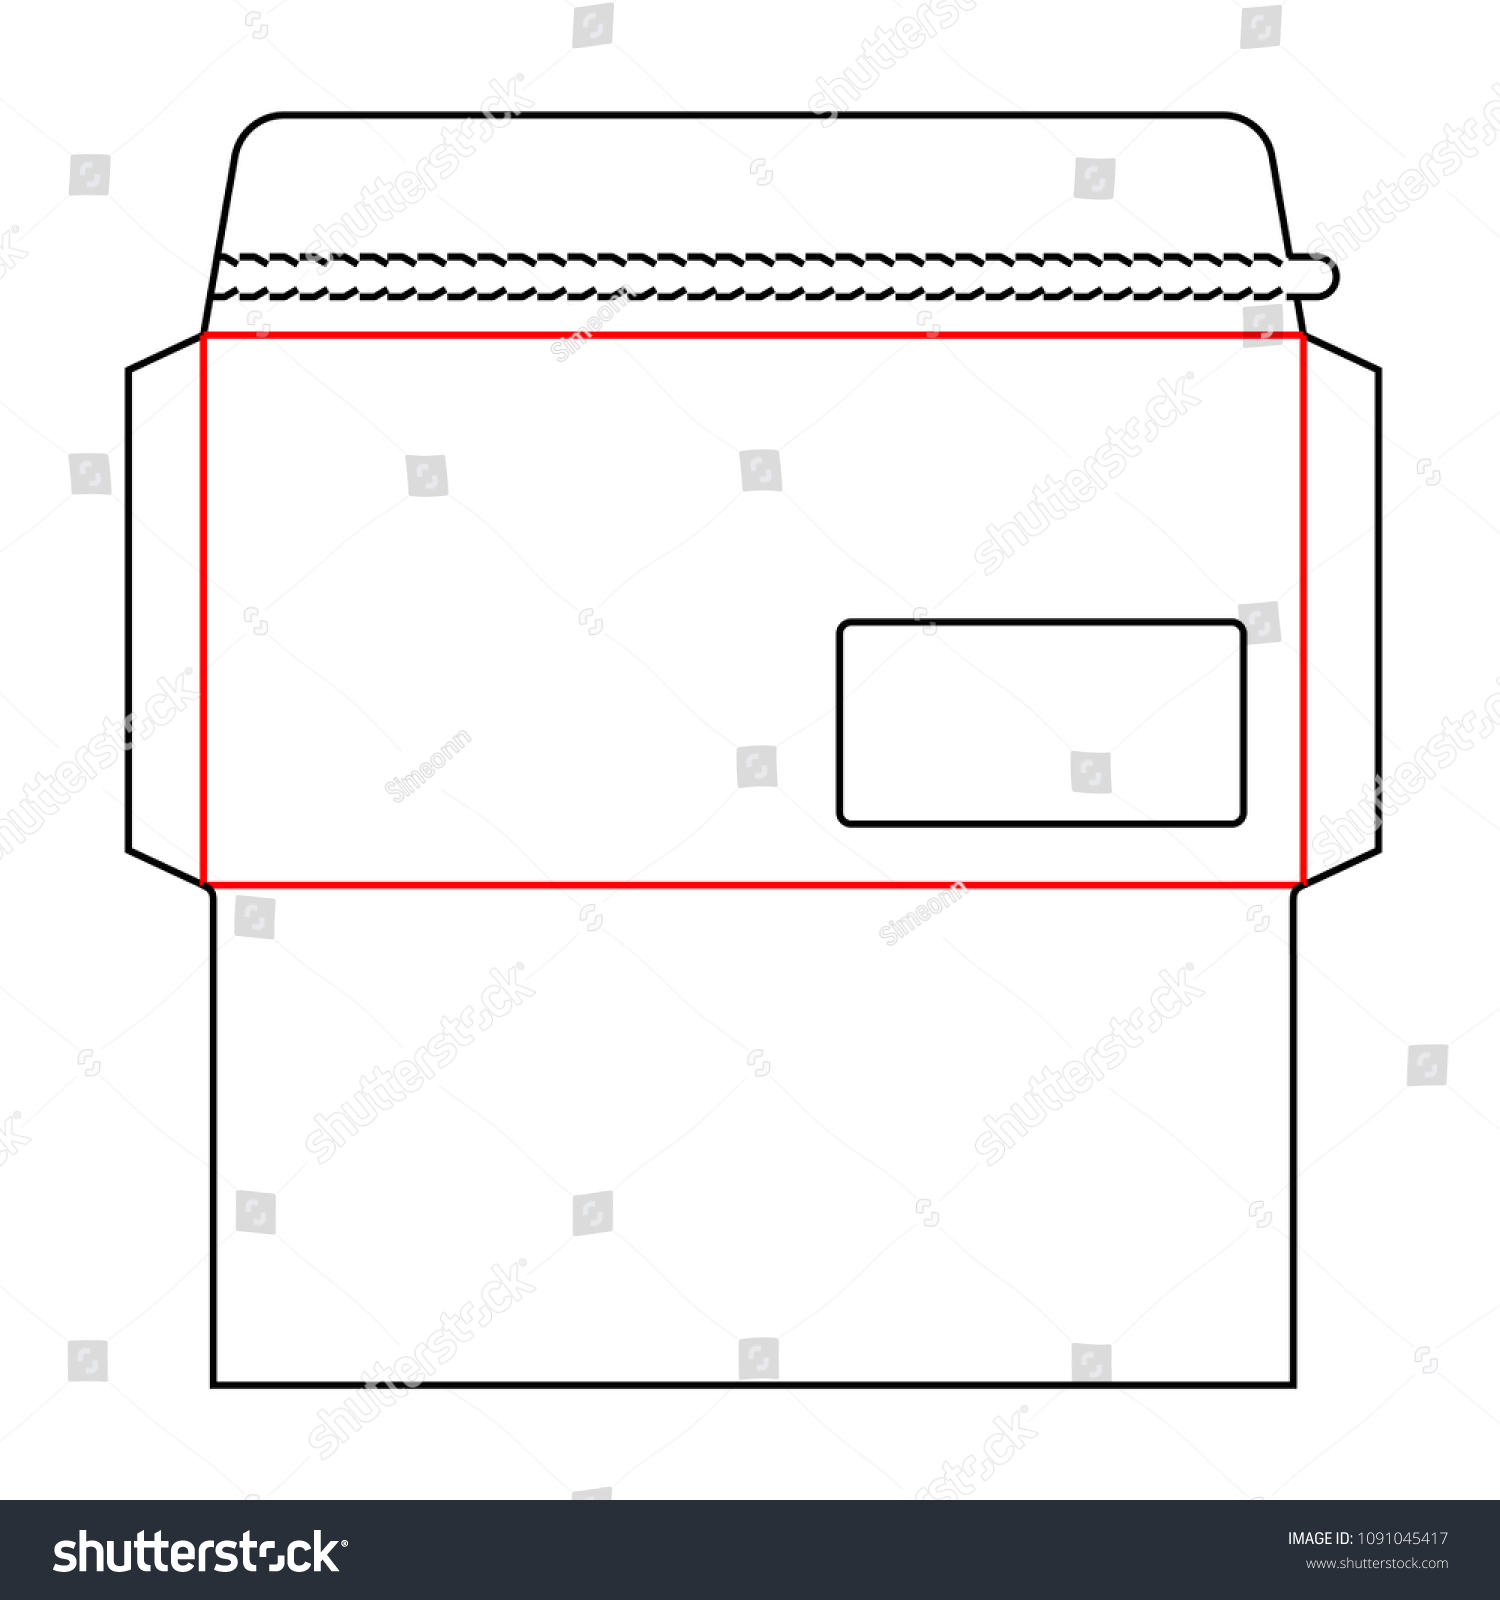 Envelope DL Size Wallet Die Cut Stock Vector (Royalty Free ...